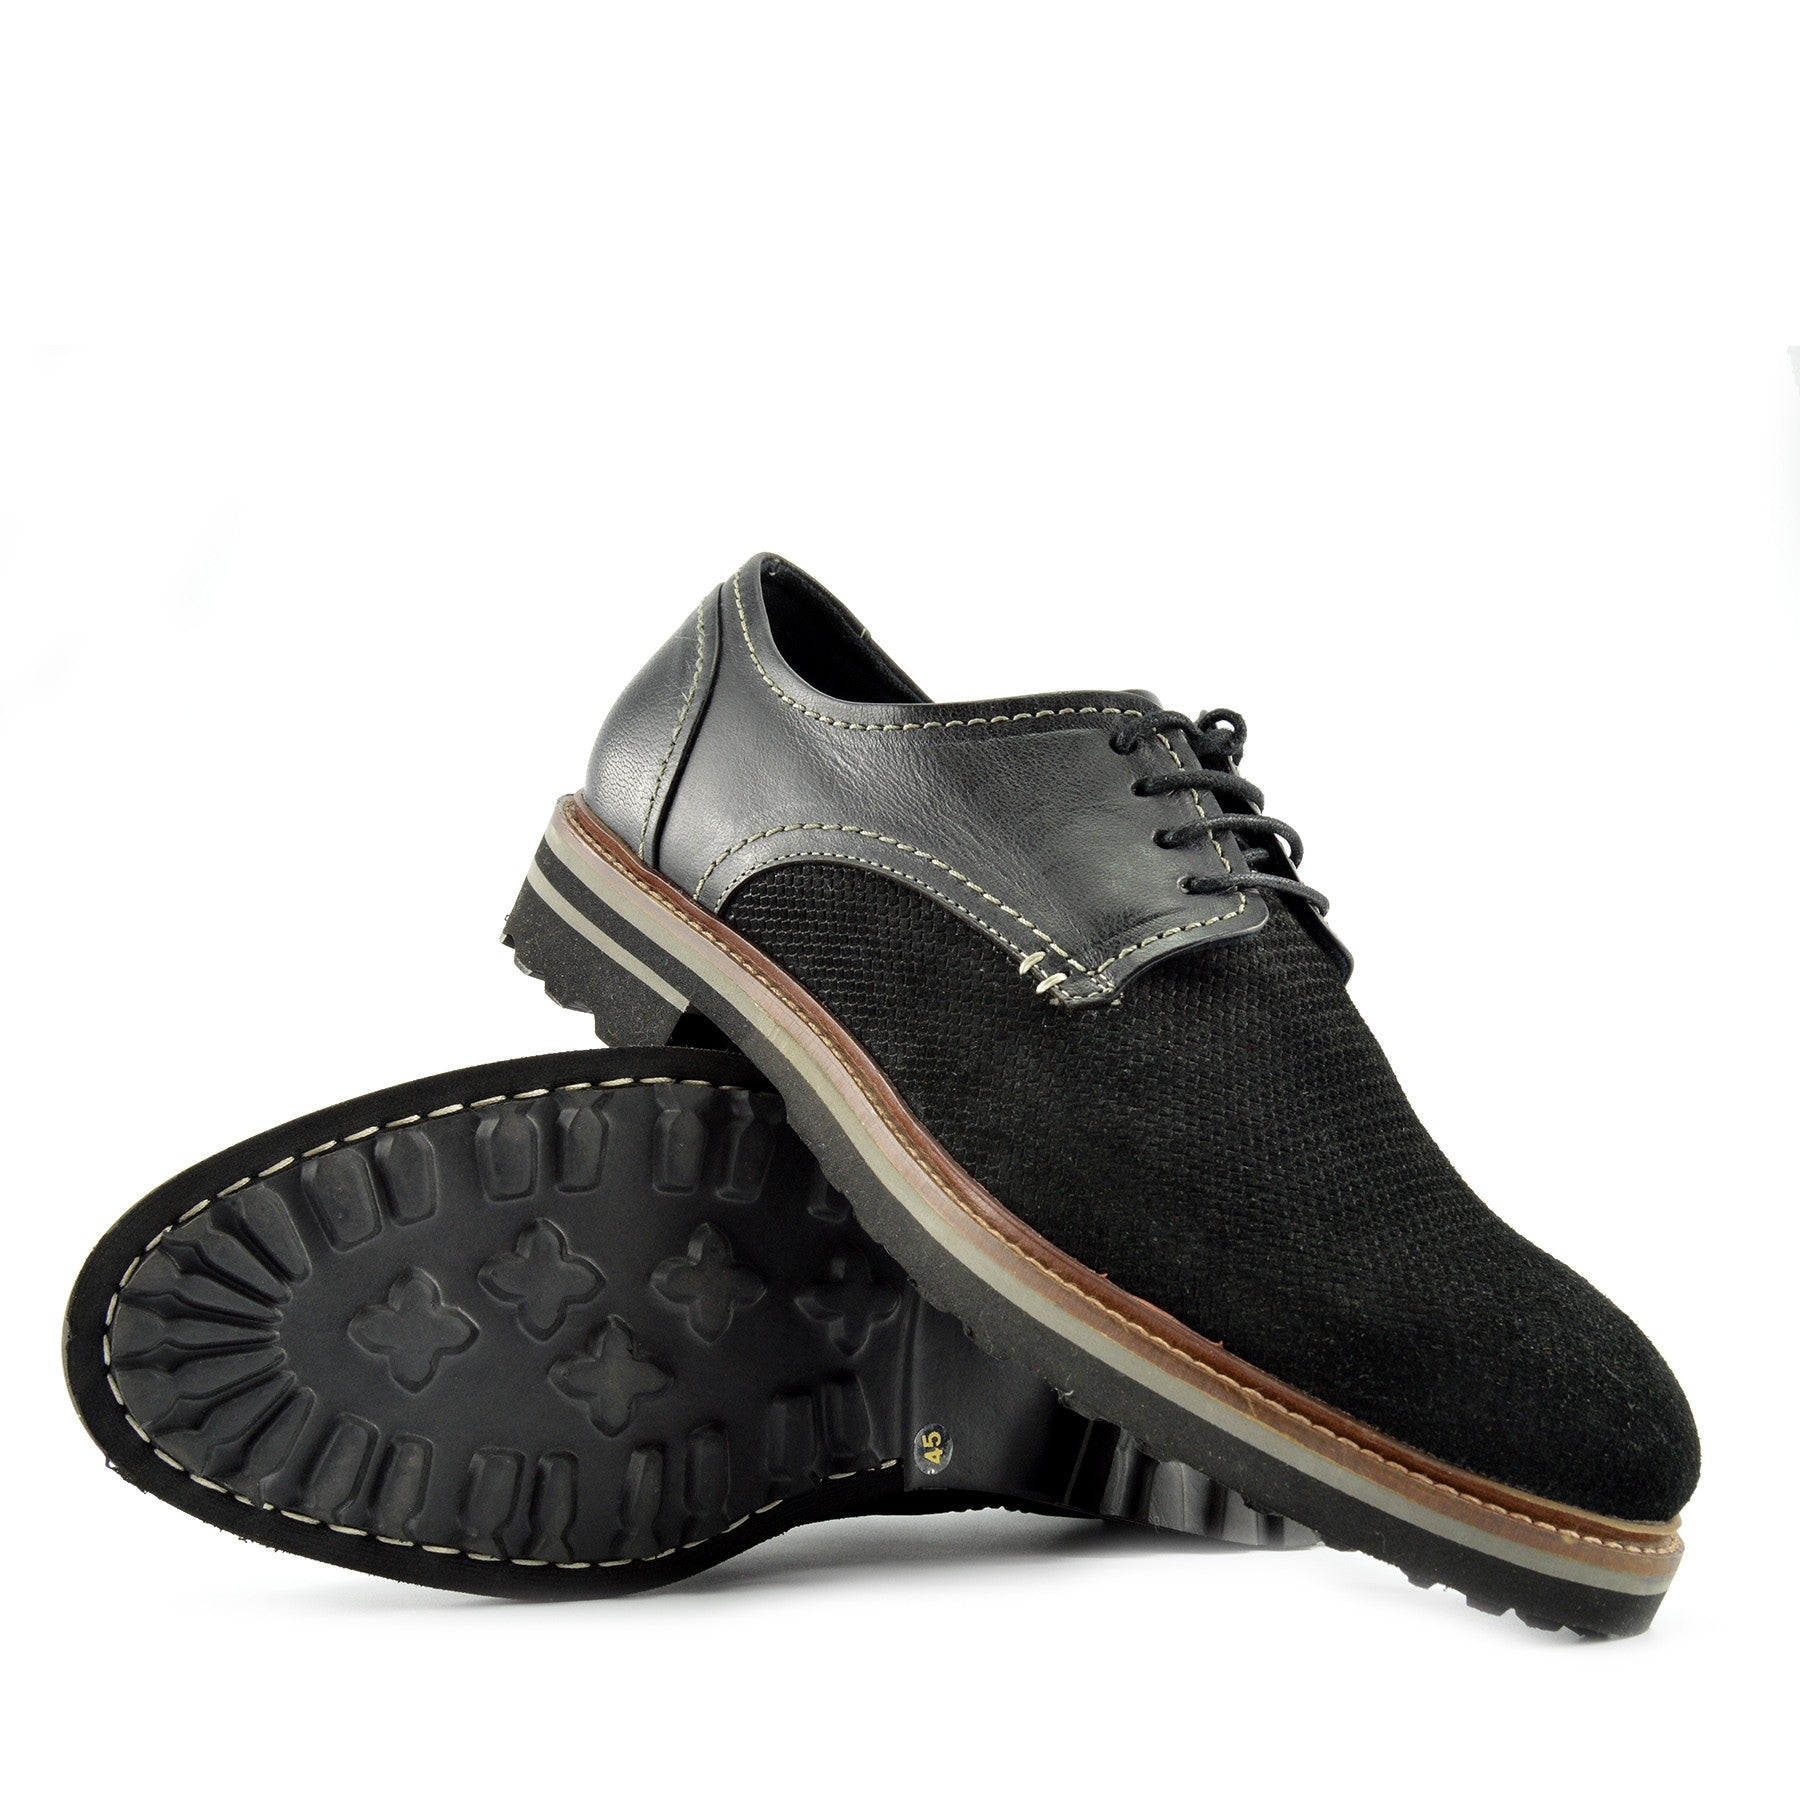 Mens Leather Brogue Shoes Lace Up Casual Office Smart Formal Shoes